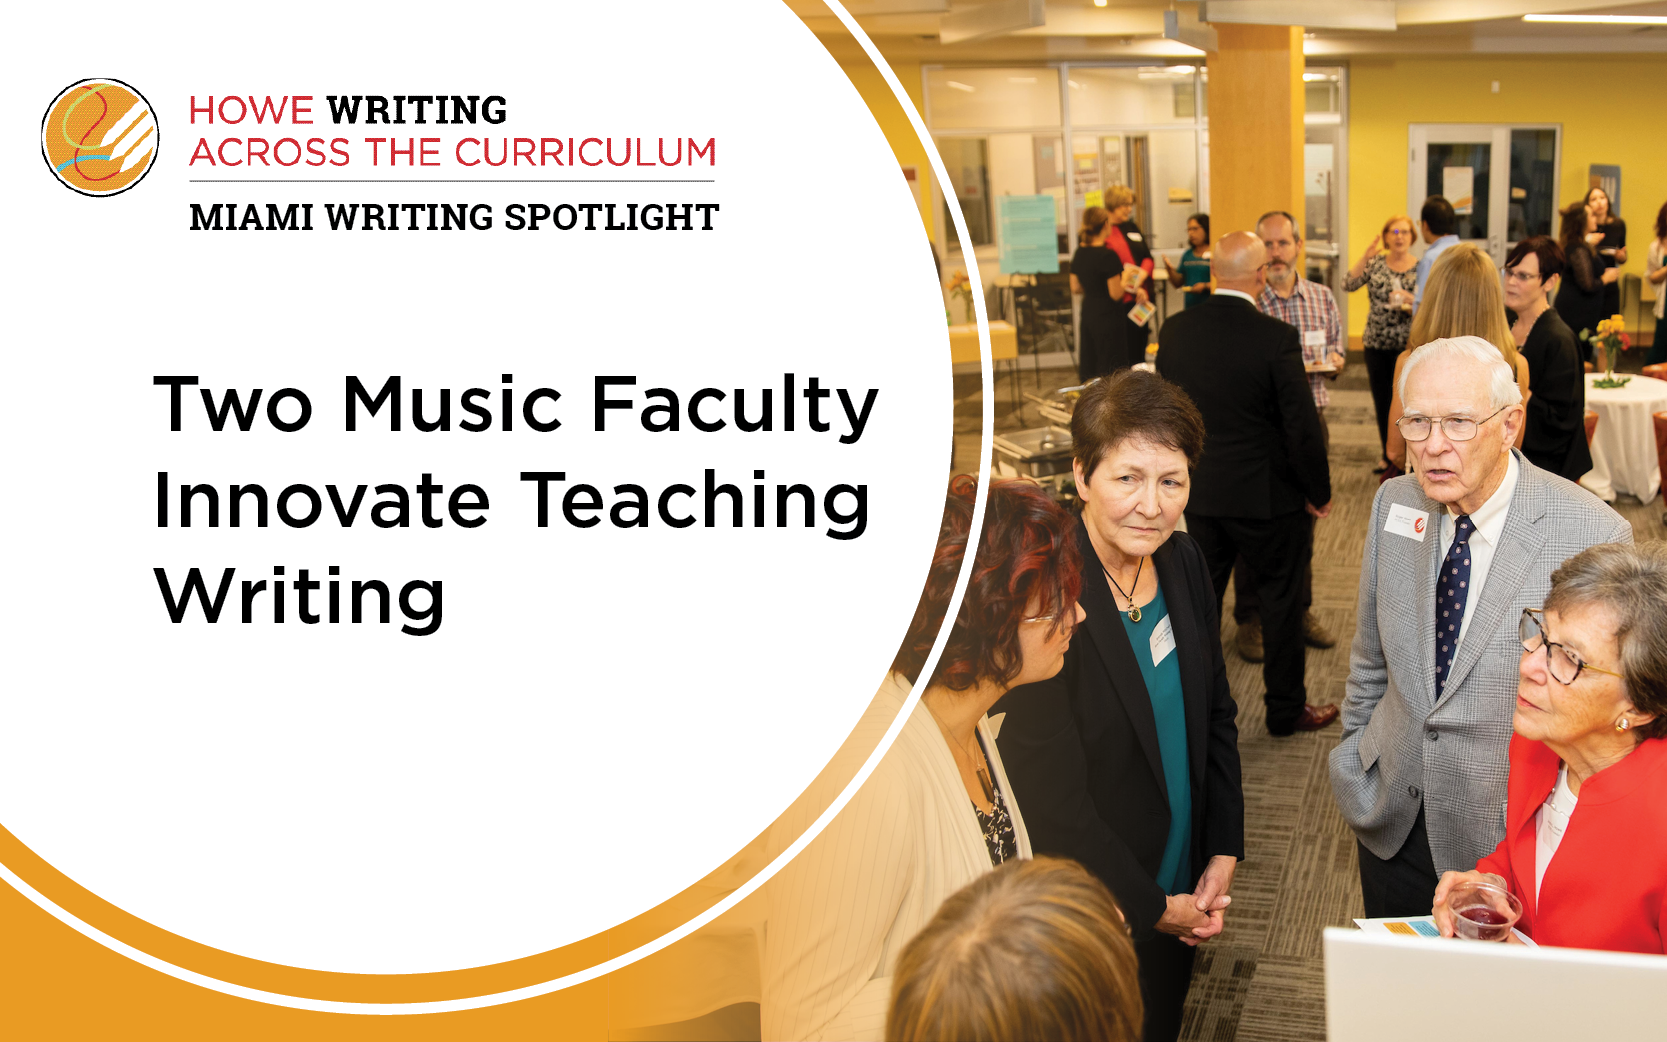 Two Music Faculty Innovate Teaching Writing